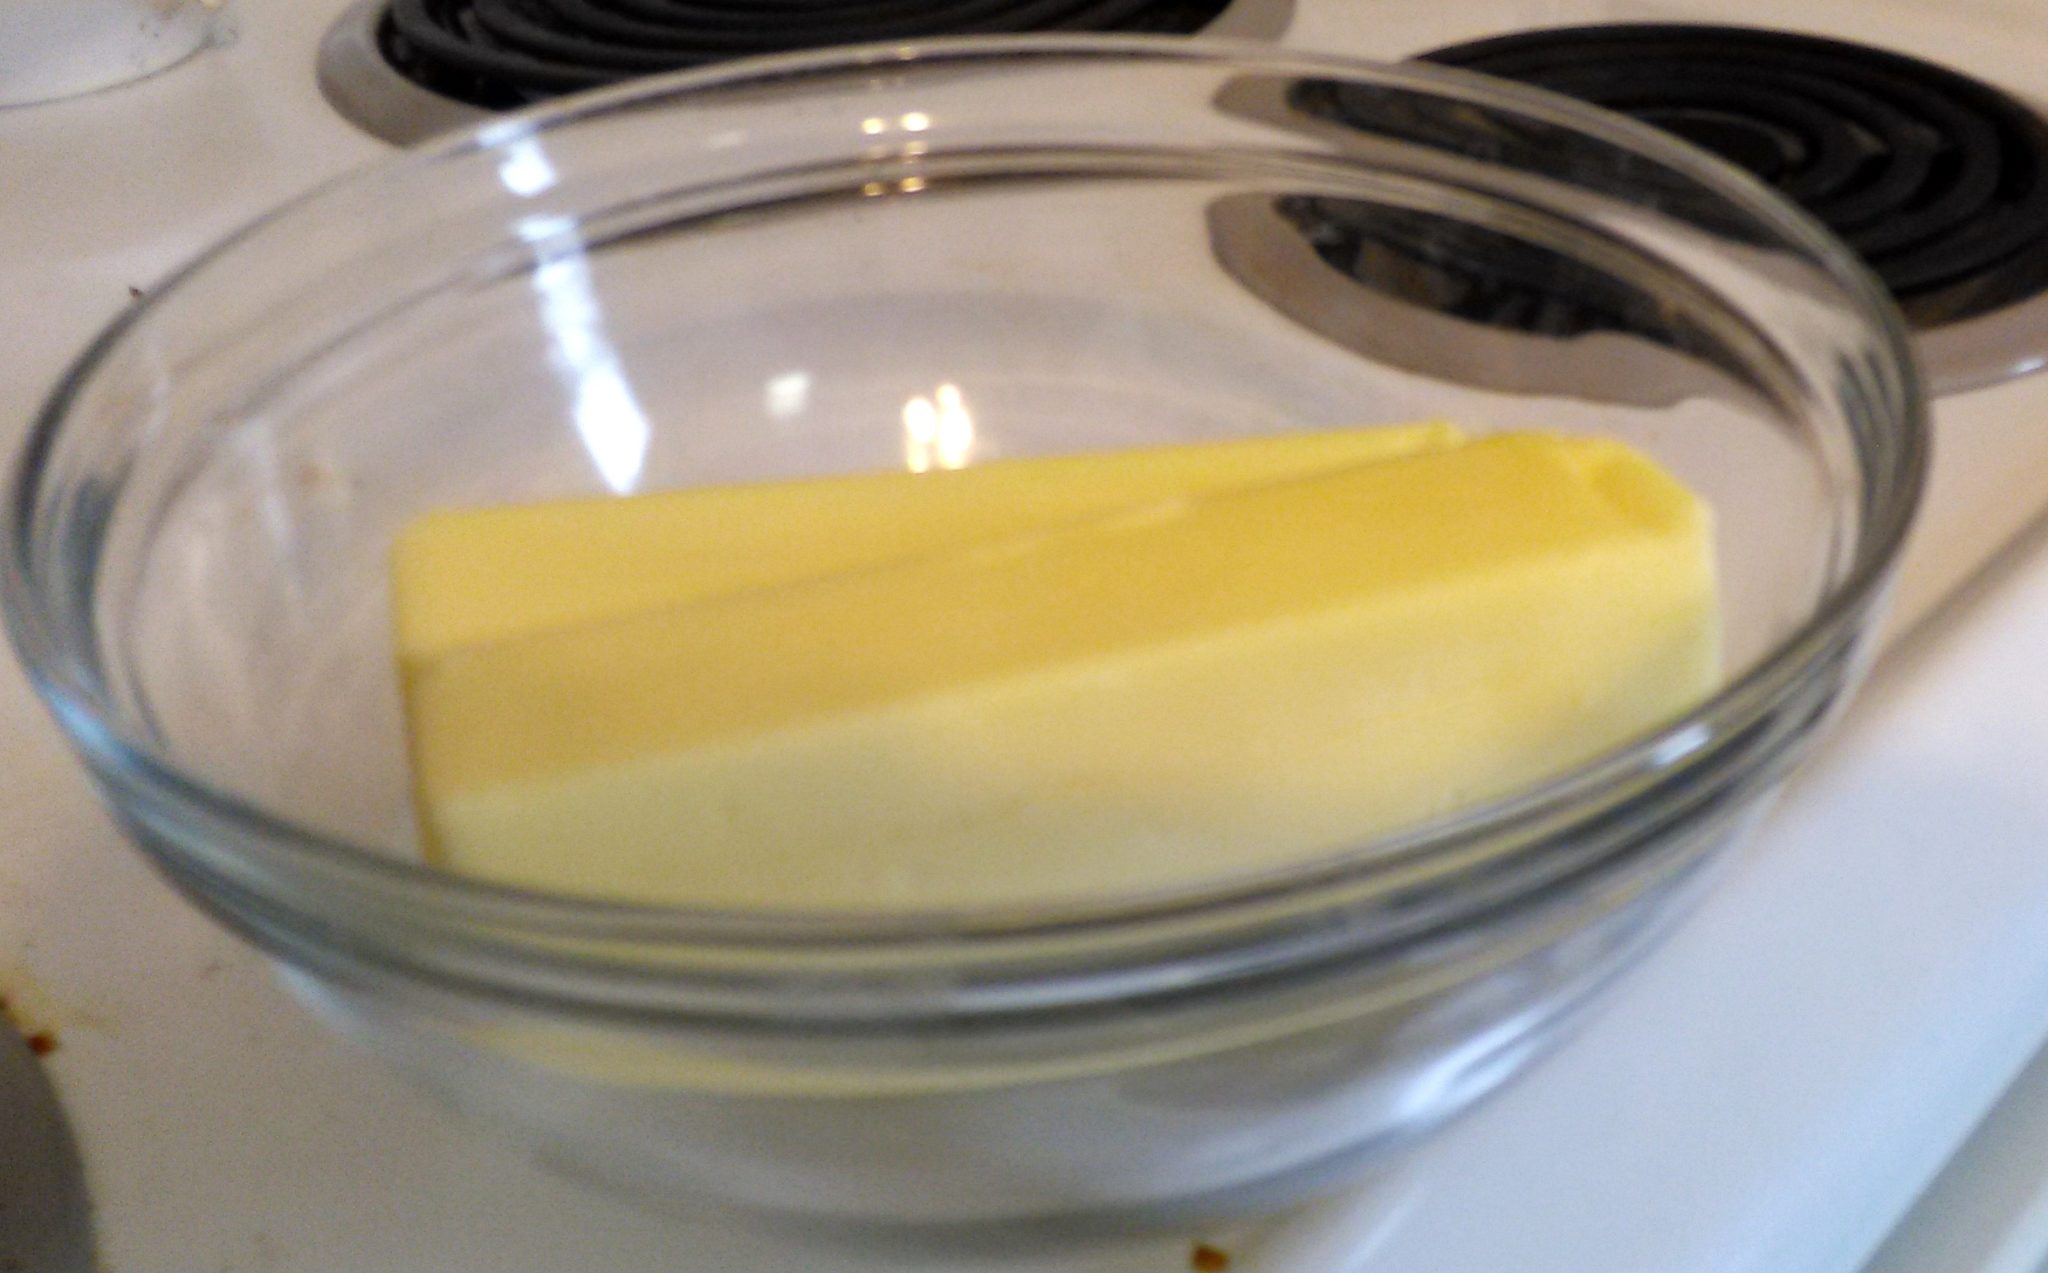 Tip: I put both sticks of butter straight from the refrigerator in a glass bowl. I placed the bowl on top of the stove so the heat from the oven below would slightly warm it to room temperature.